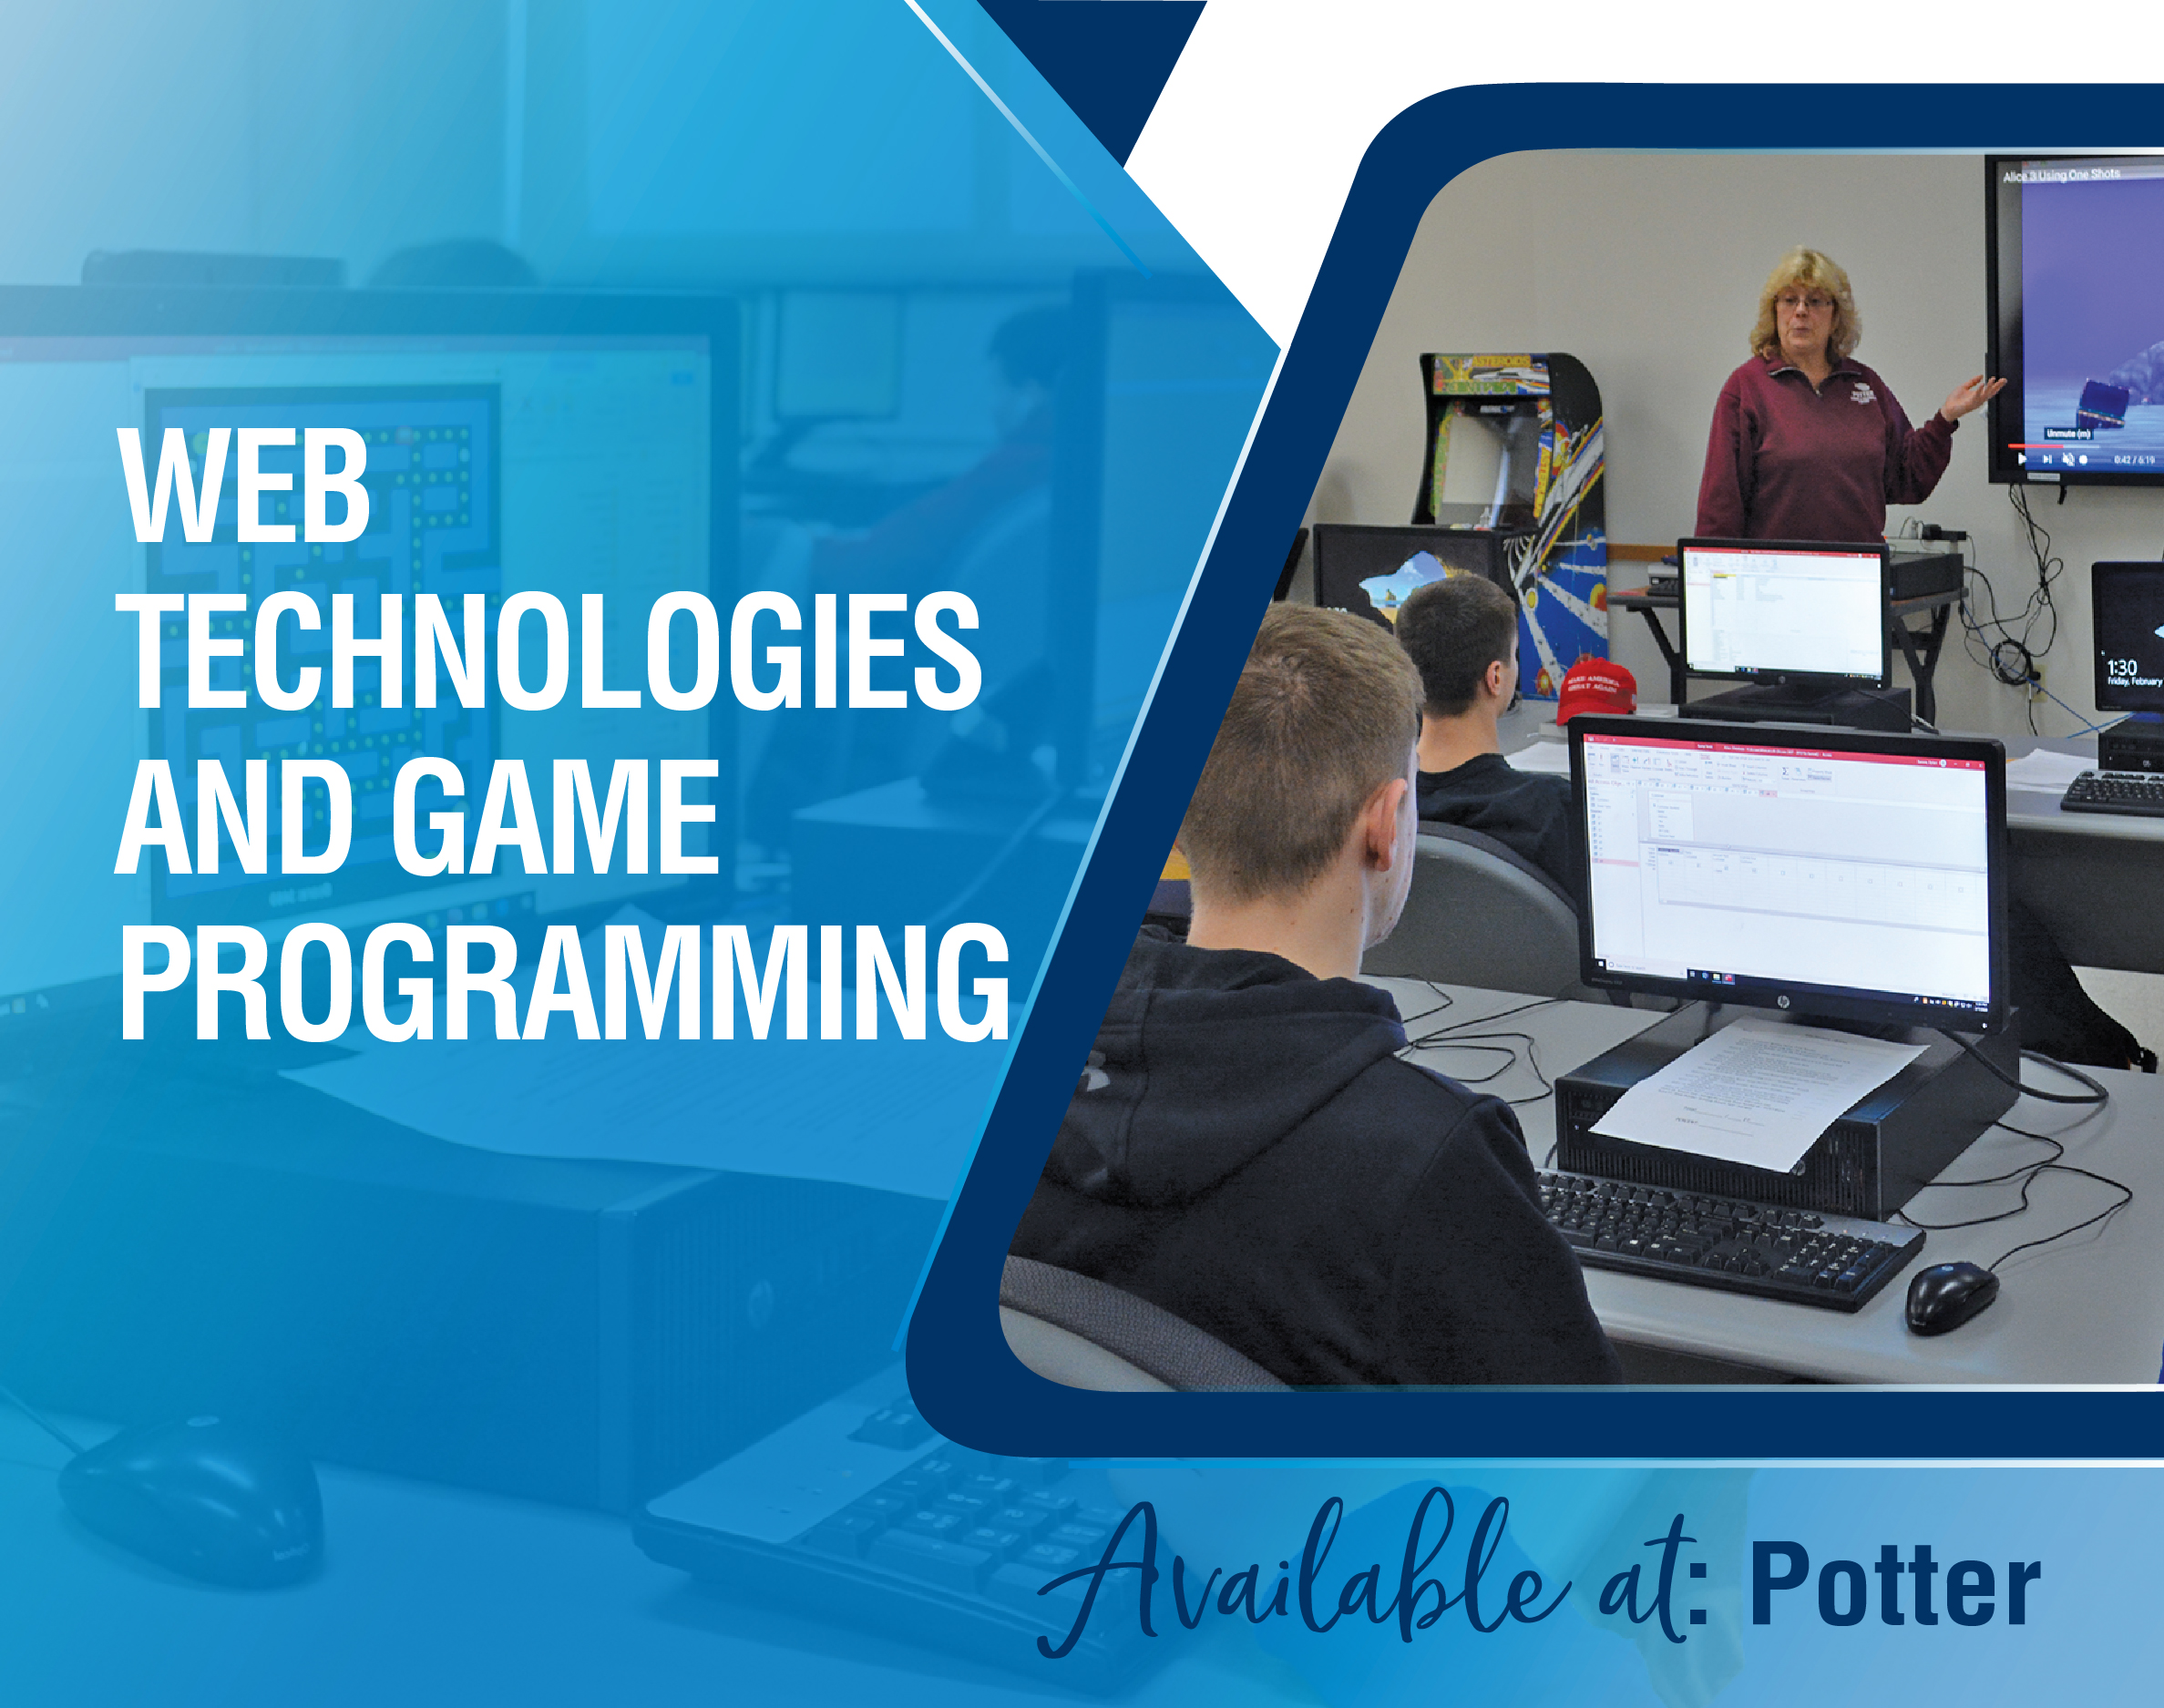 Web Technologies and Game Programming